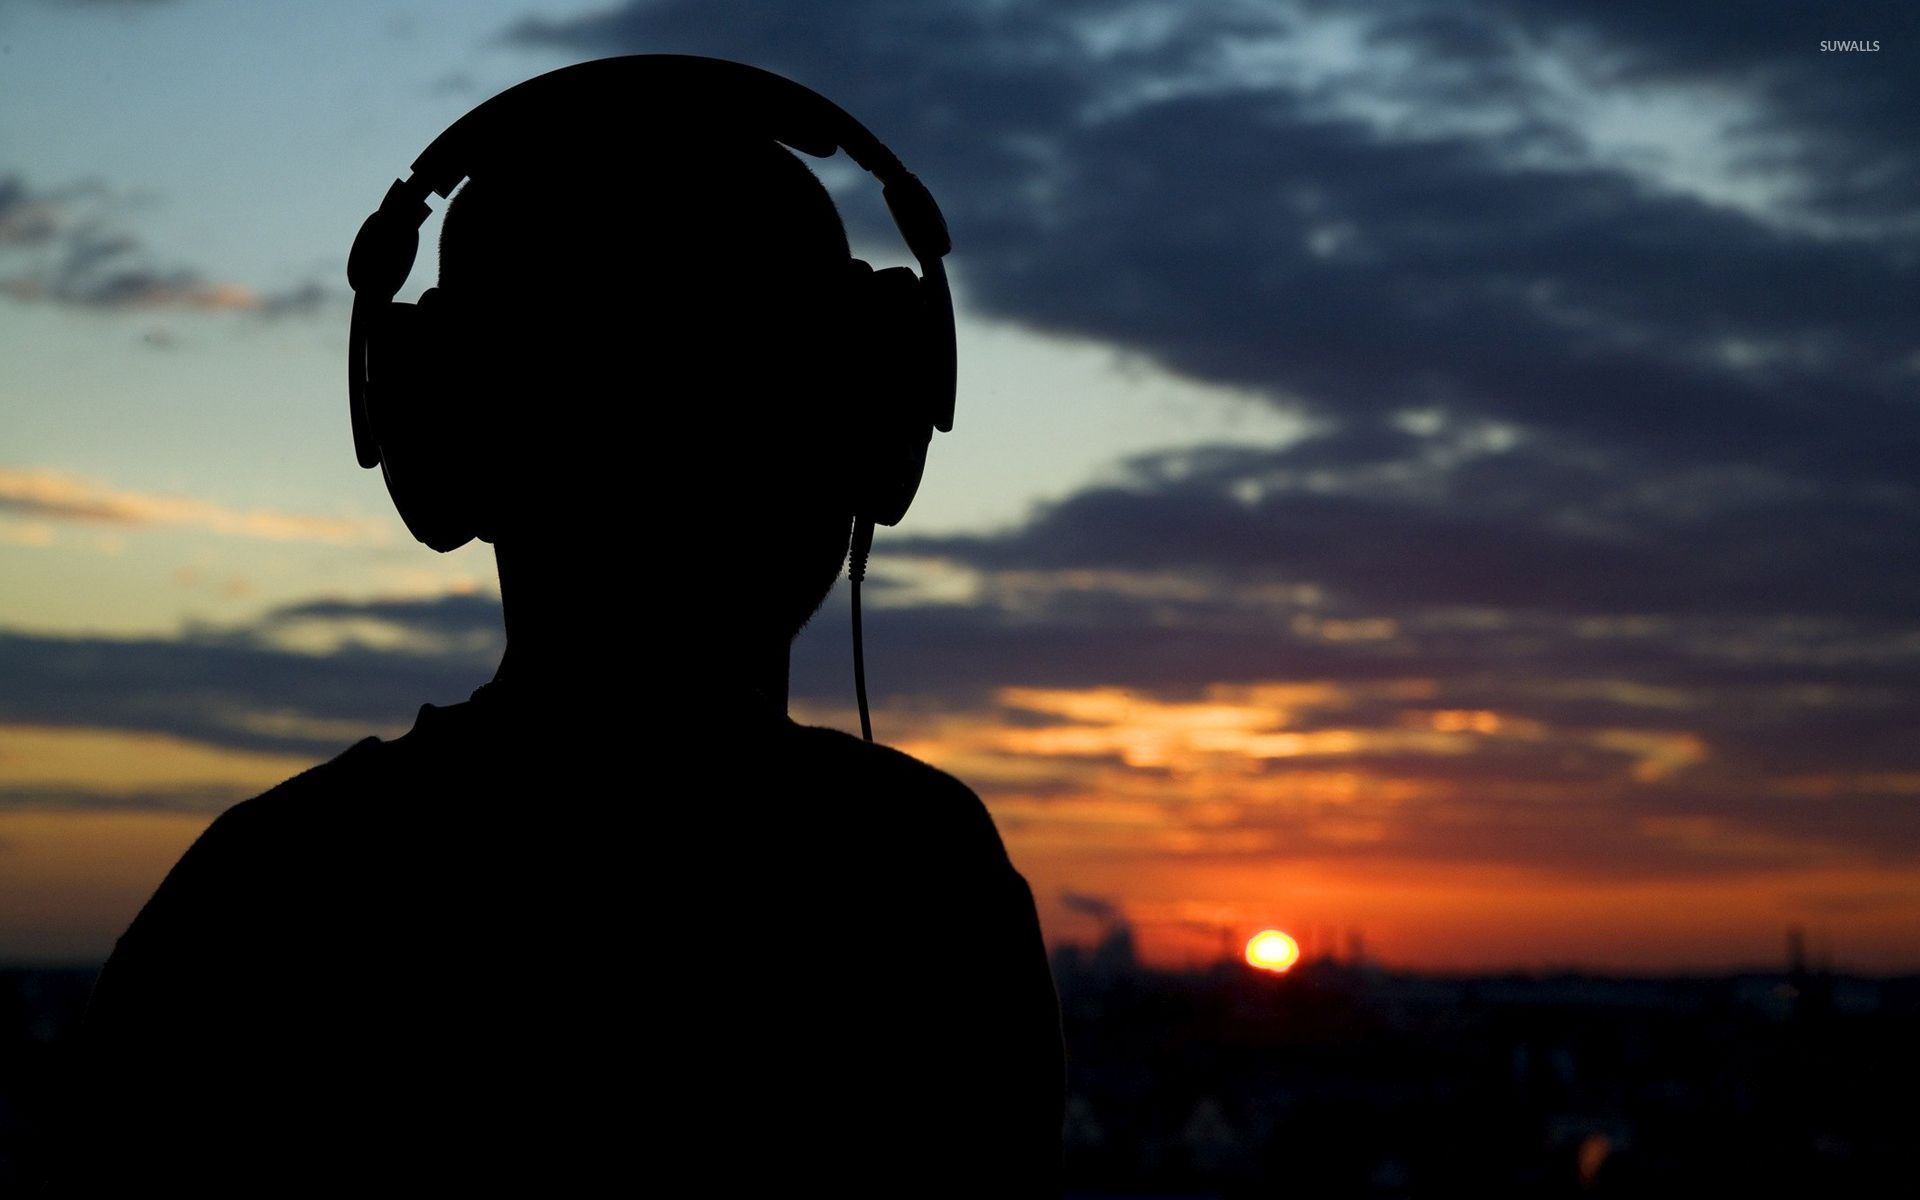 Download Wallpaper Music Photography - listening-to-music-at-sunset-46733-1920x1200  Pictures_139766.jpg